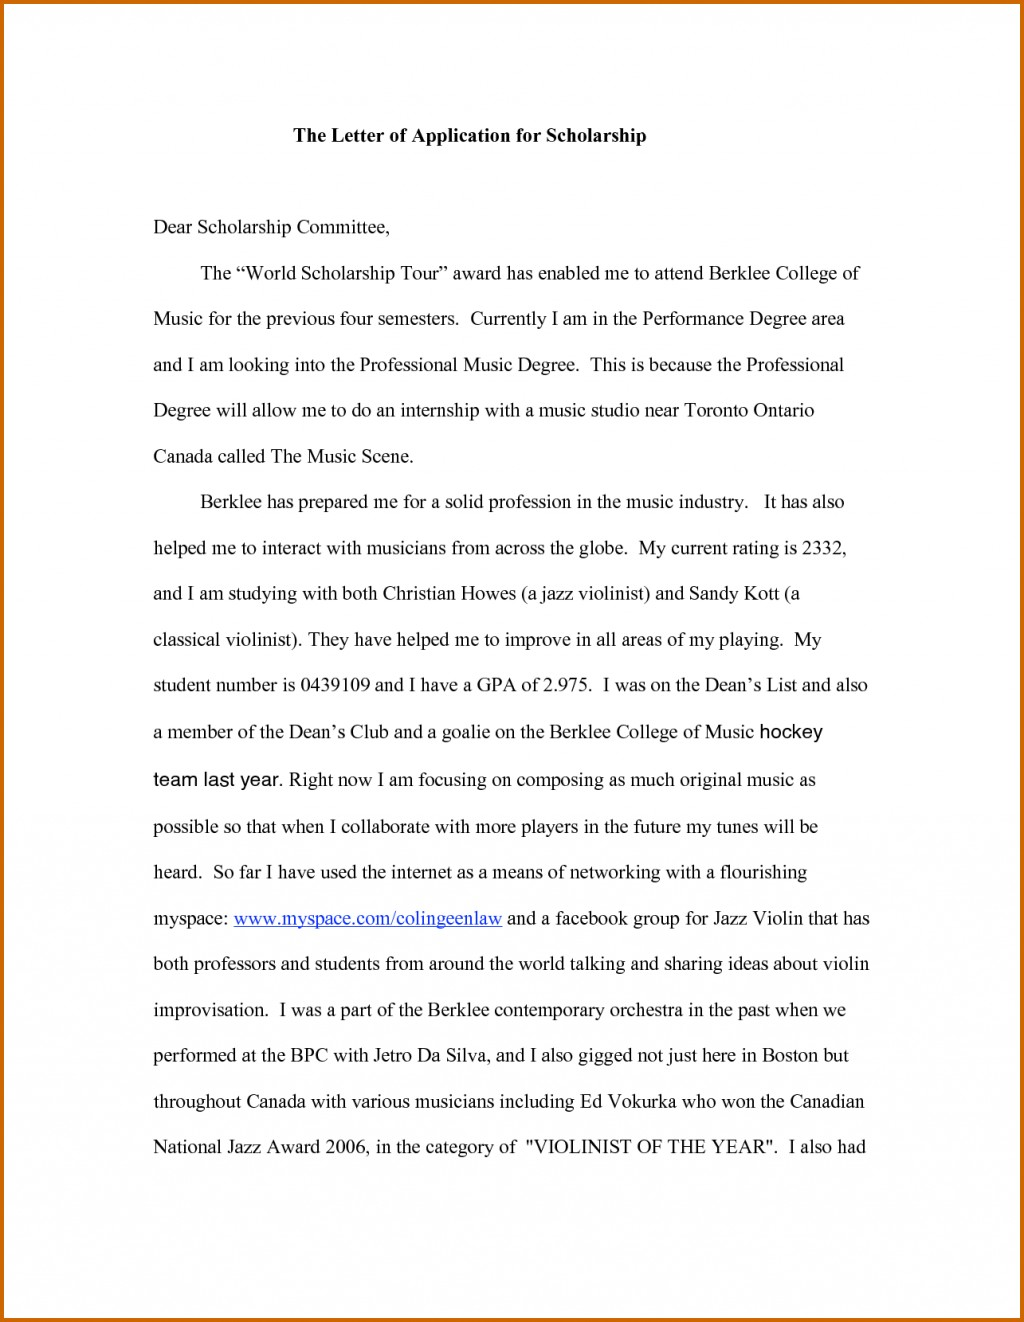 004 How To Write Application For Scholarship Essays Essay Best Winning A Book Pdf Tips On Large